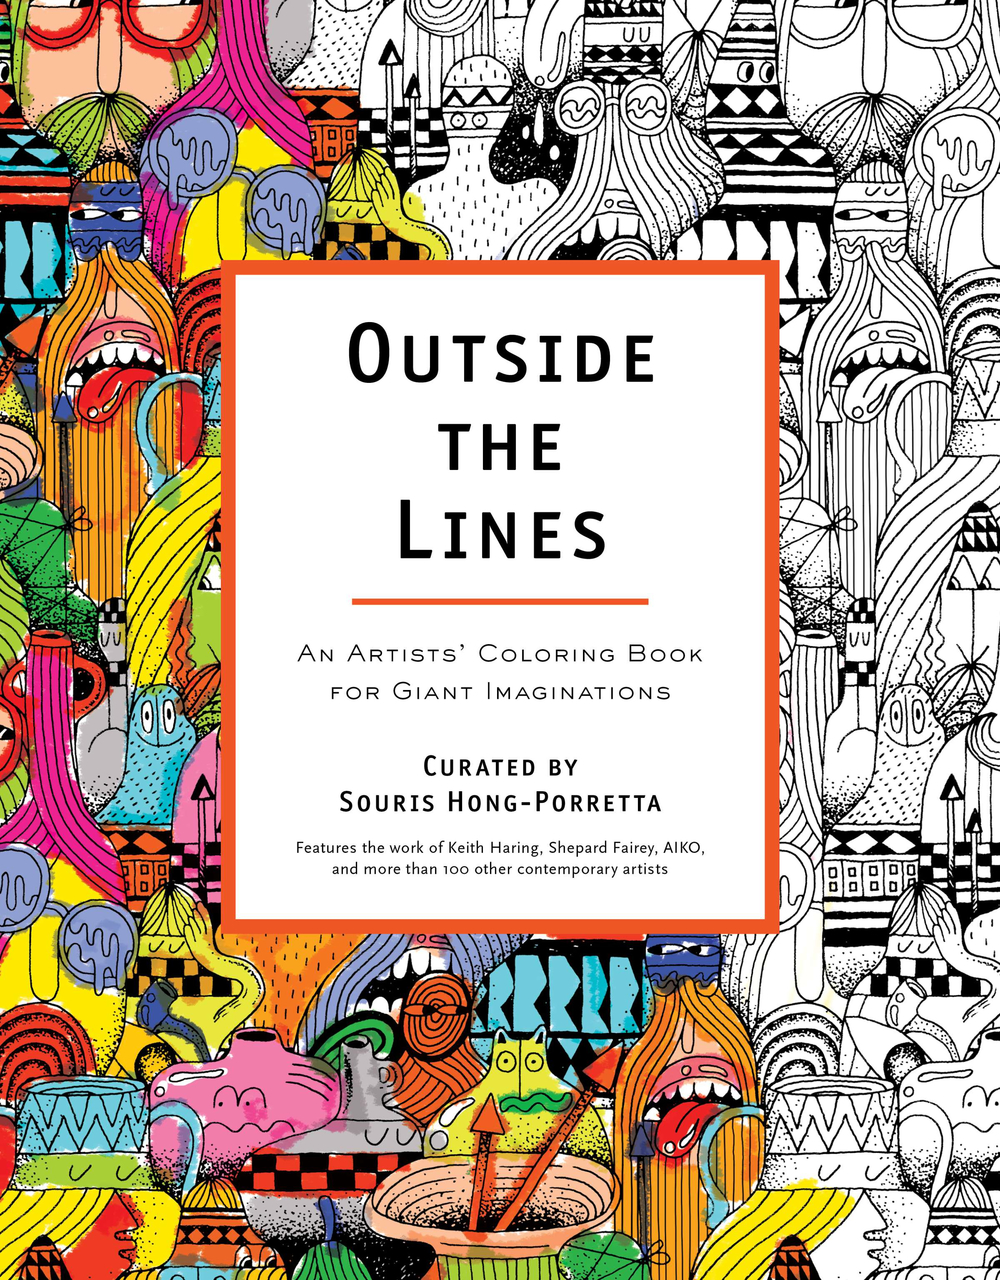 Outside the Lines Curated By Souris Hong-Porretta